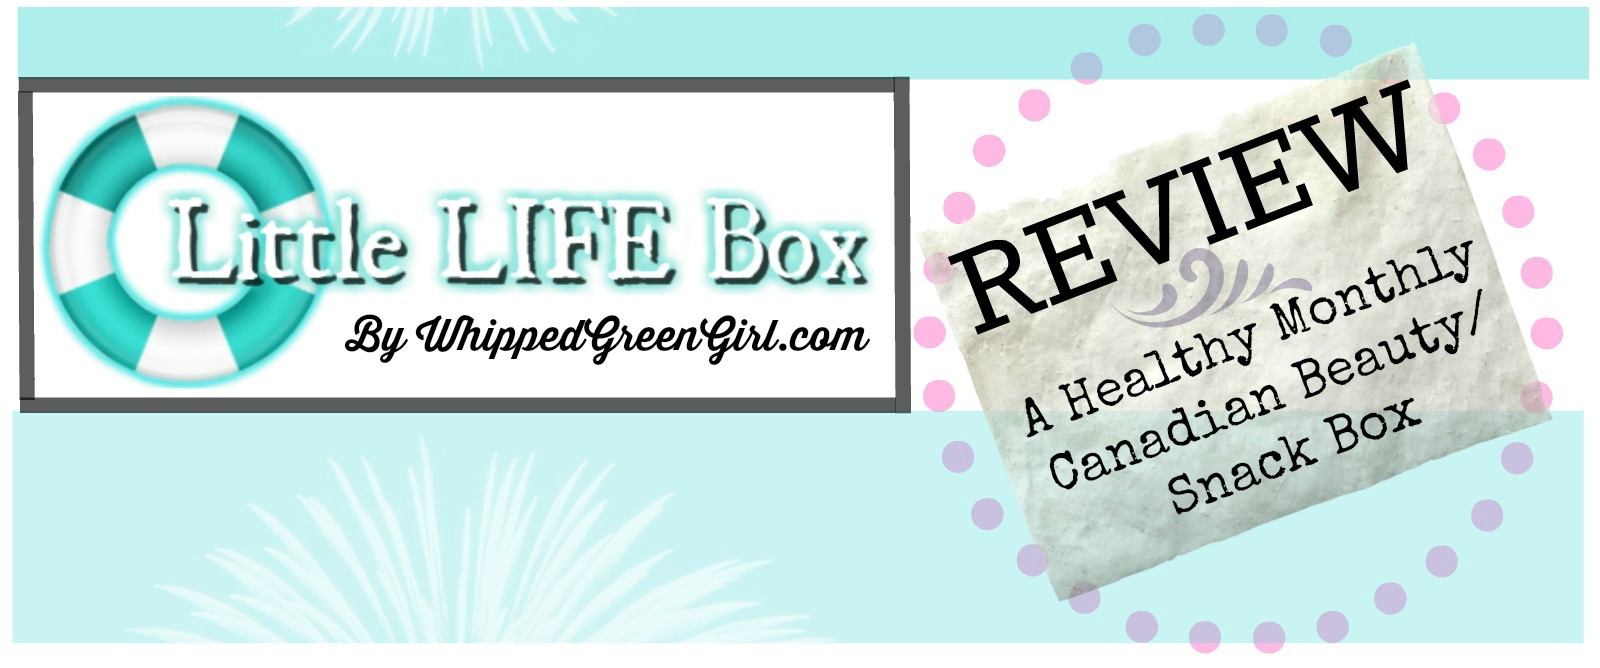 Little Life Box Review (Large2)